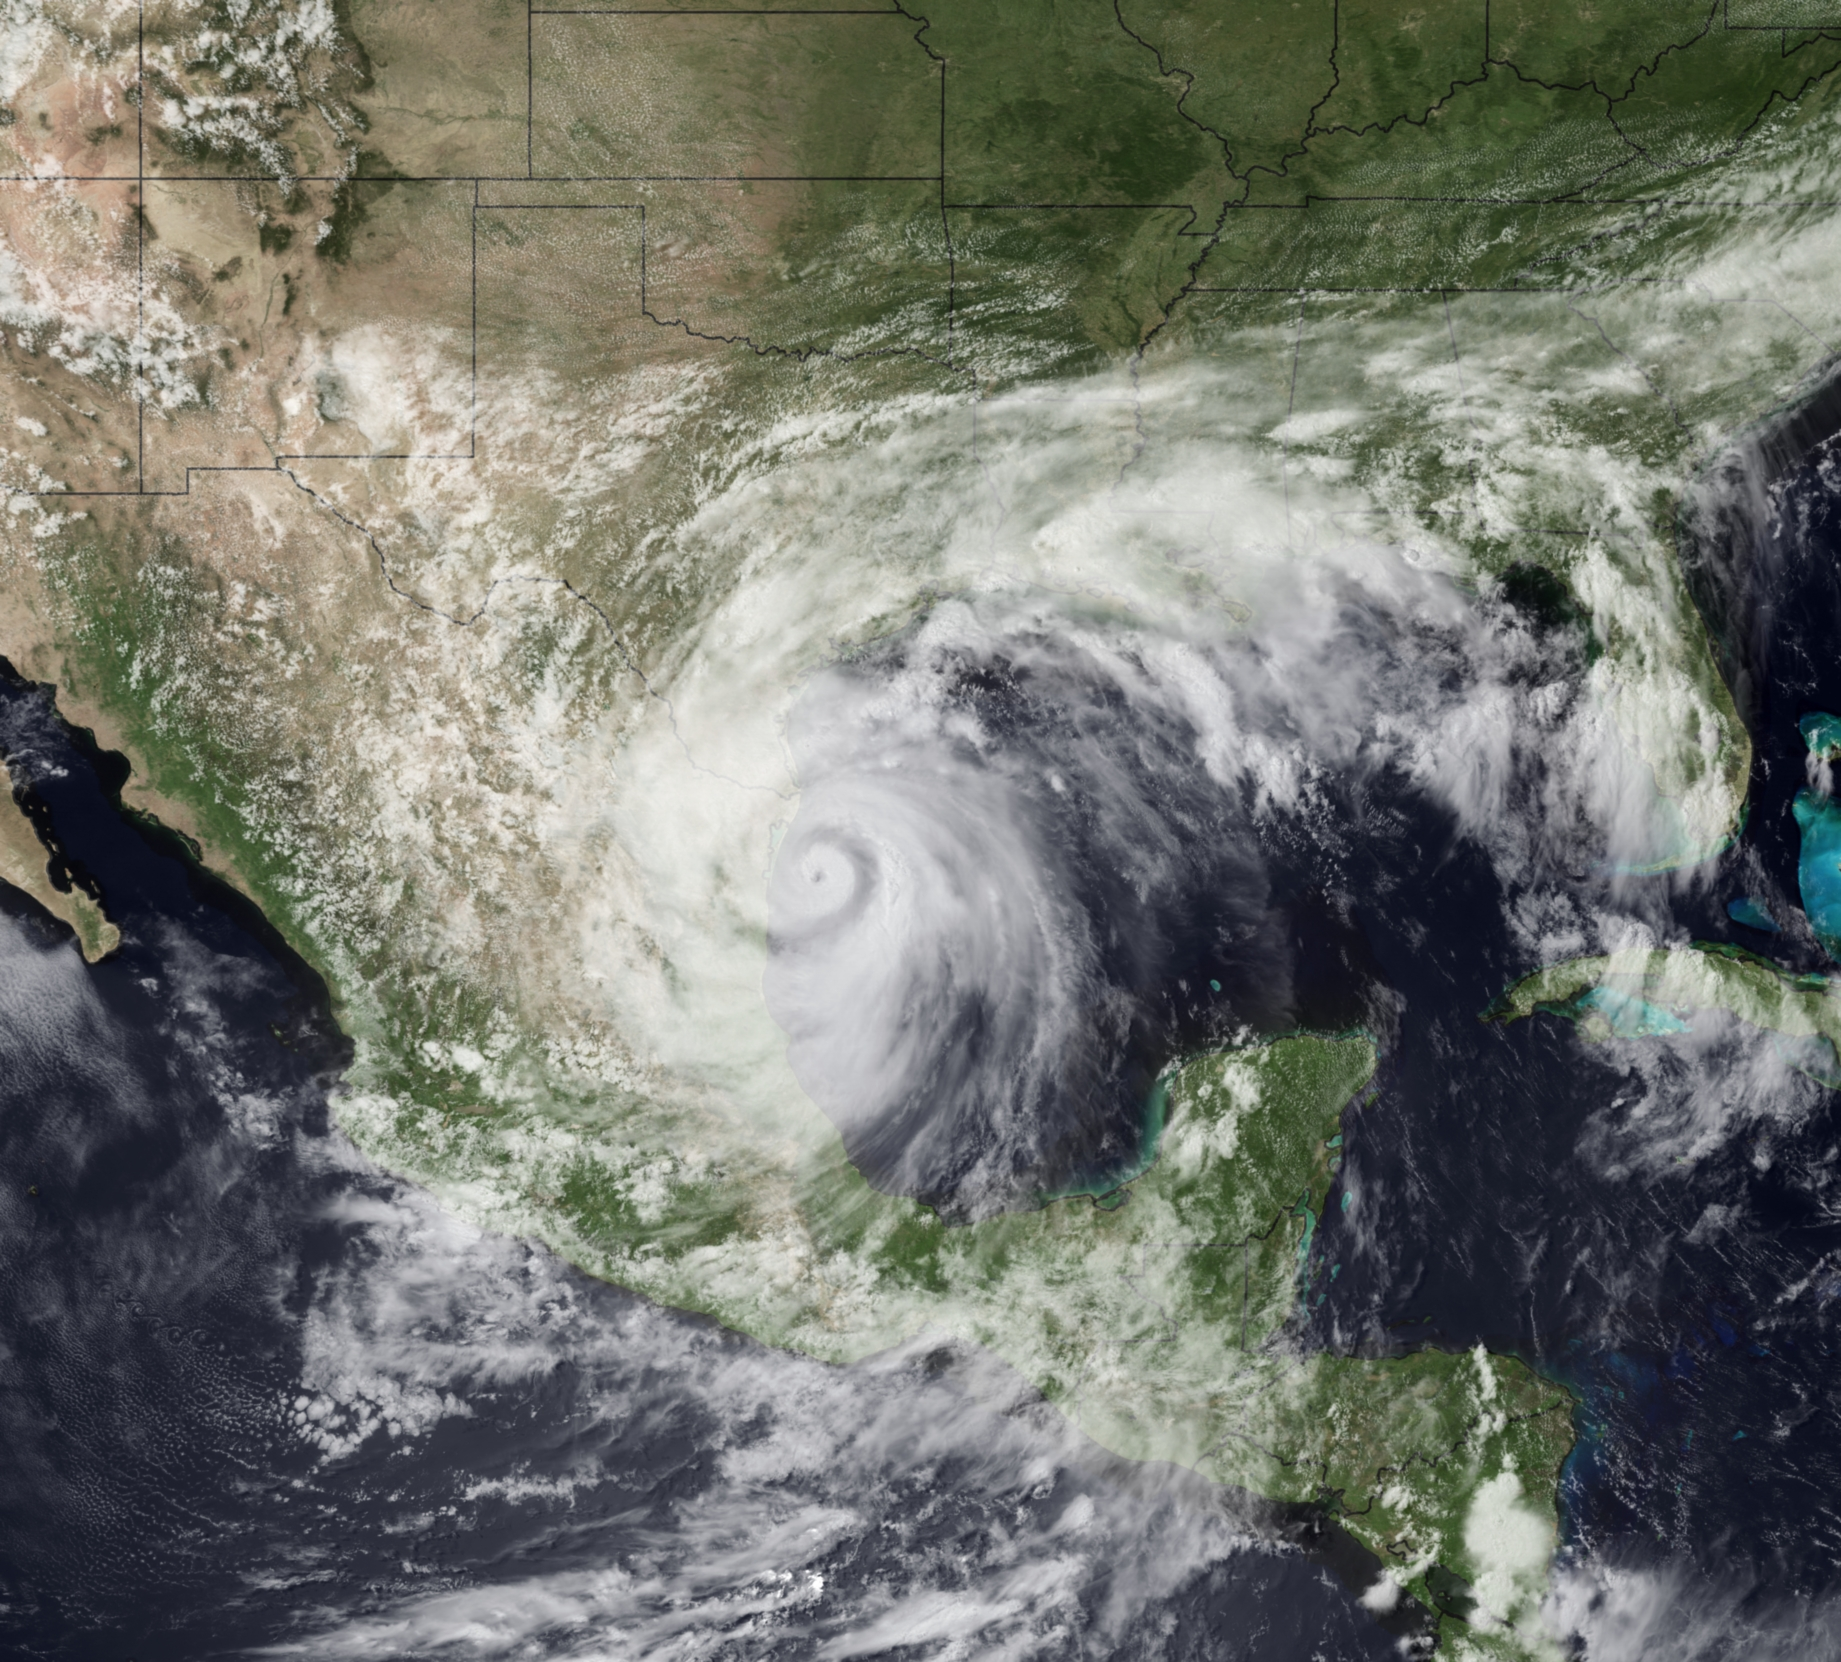 Satellite imagery of Tropical Storm Alex in the Gulf of Mexico prior to making landfall on 30 June 2010.